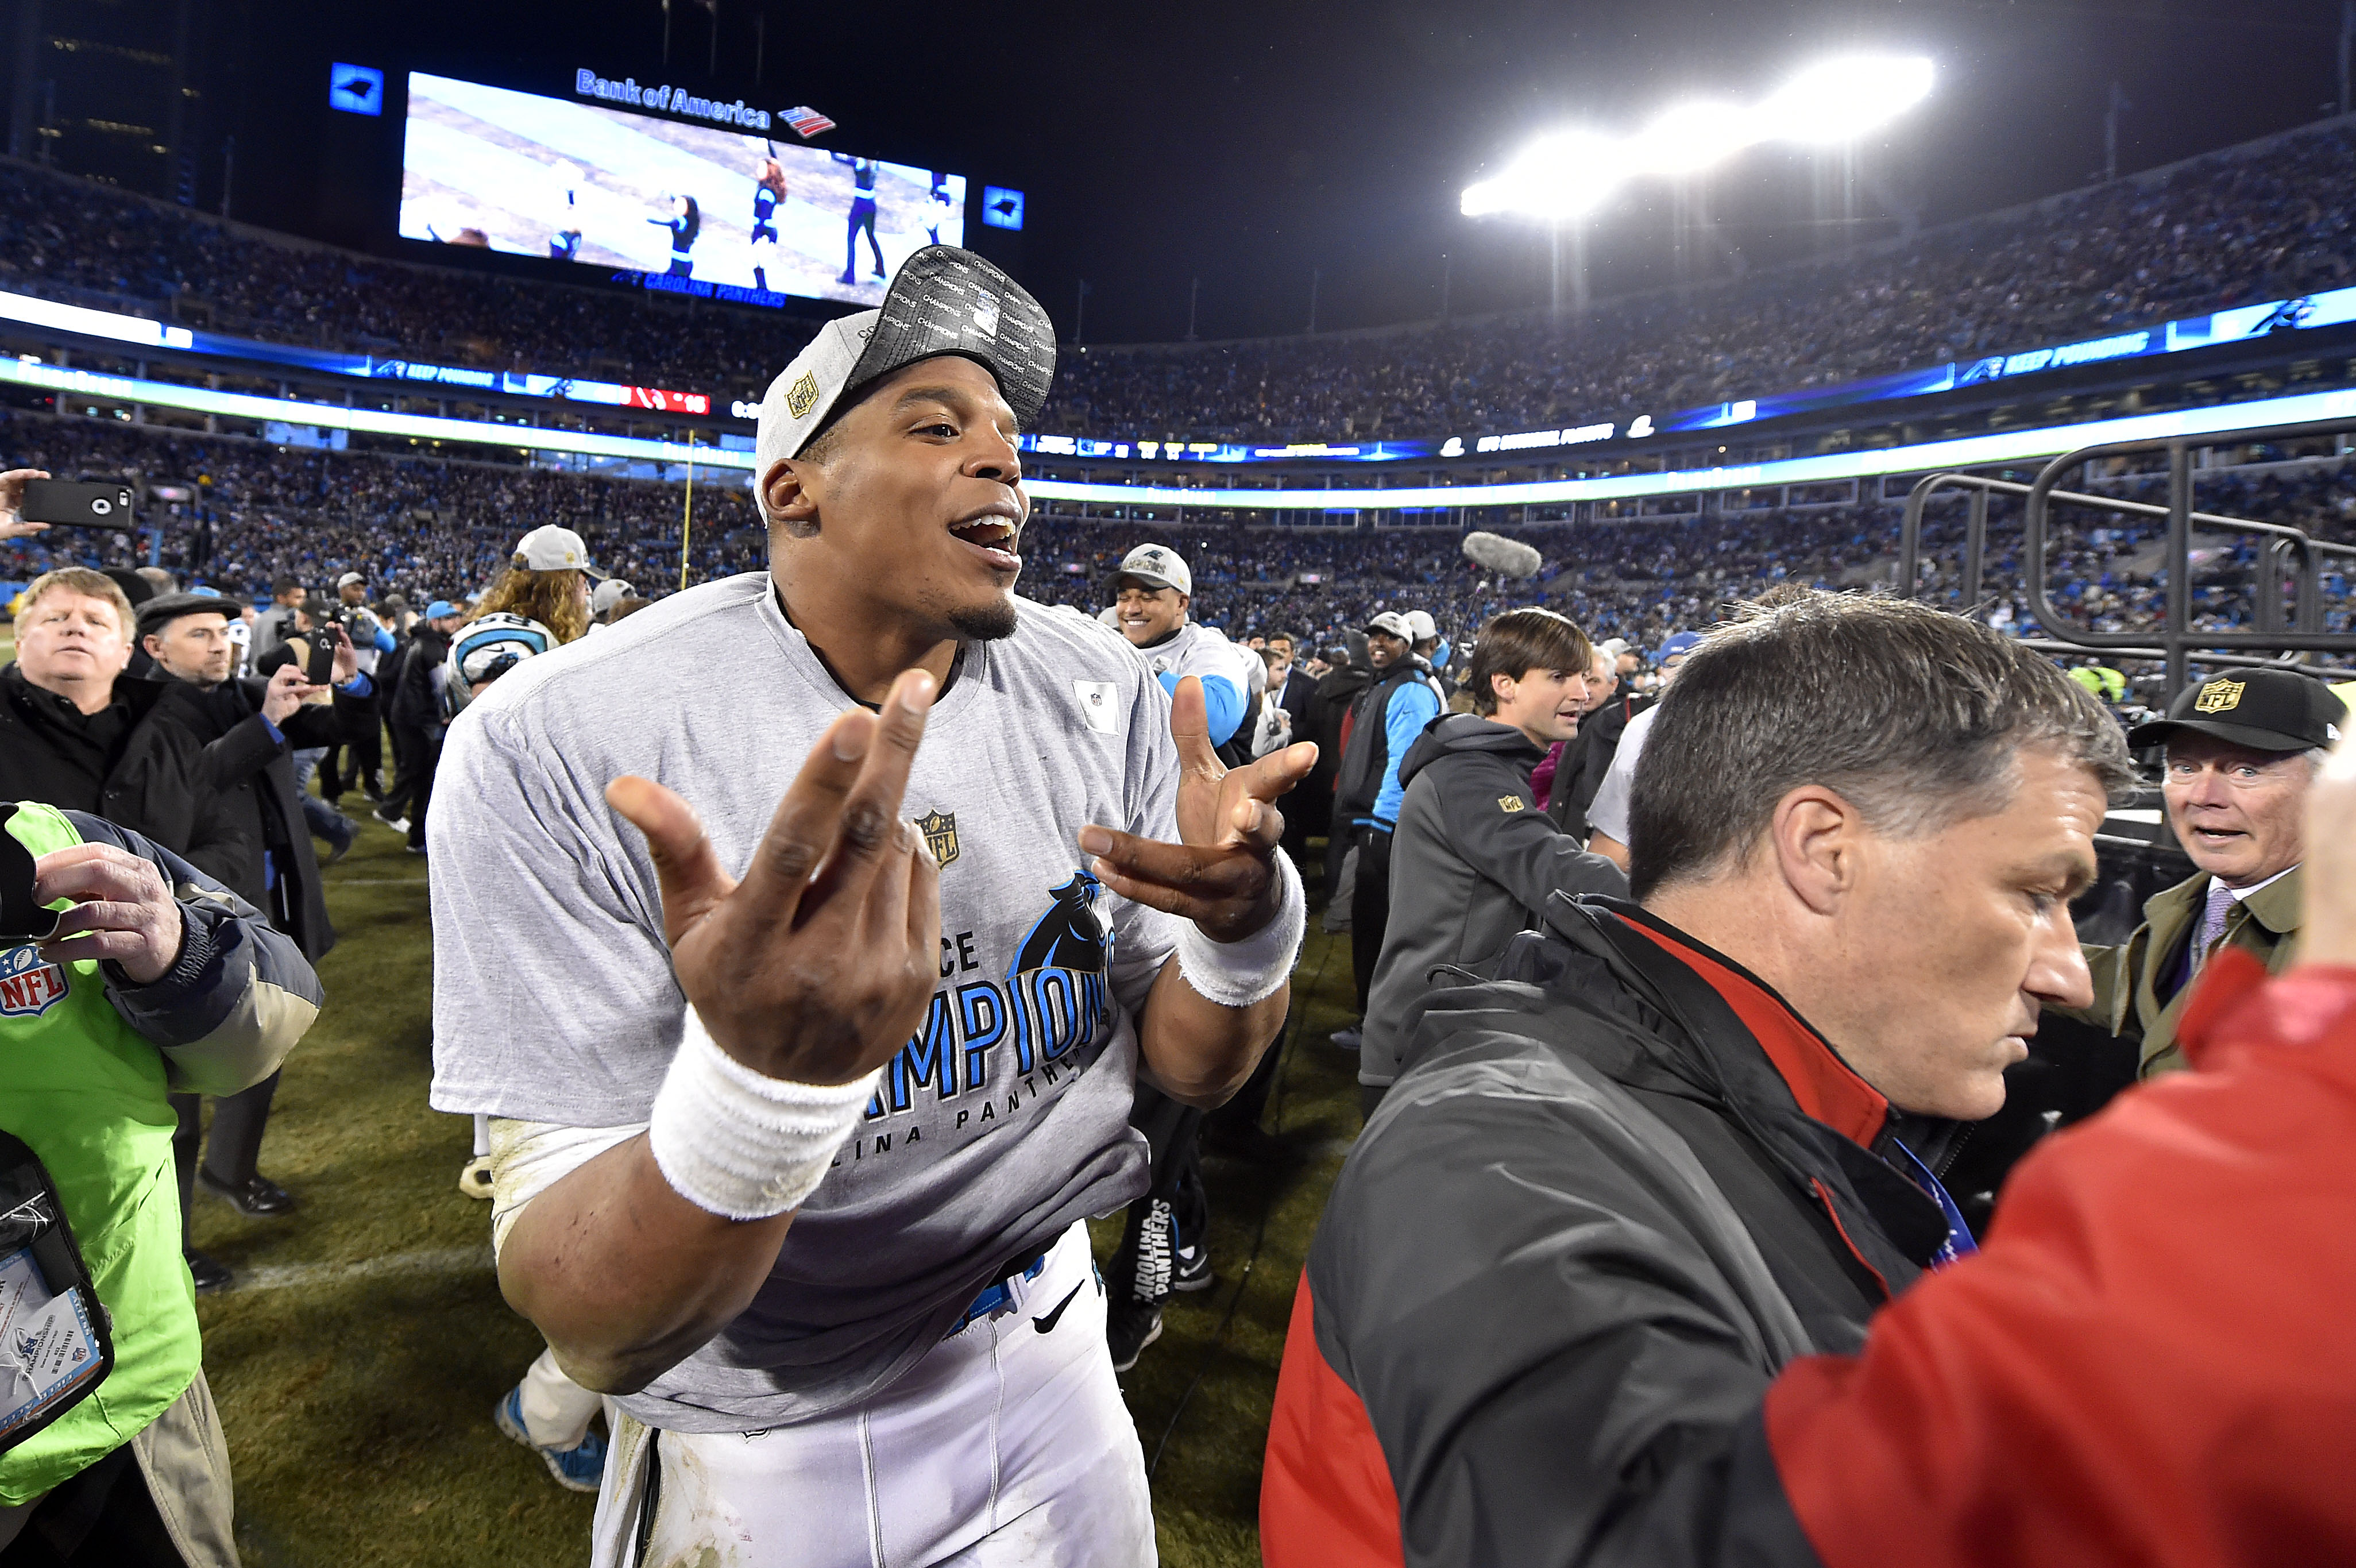 Cam Newton definitely not issuing a gang sign- that would be racist of you to even think that